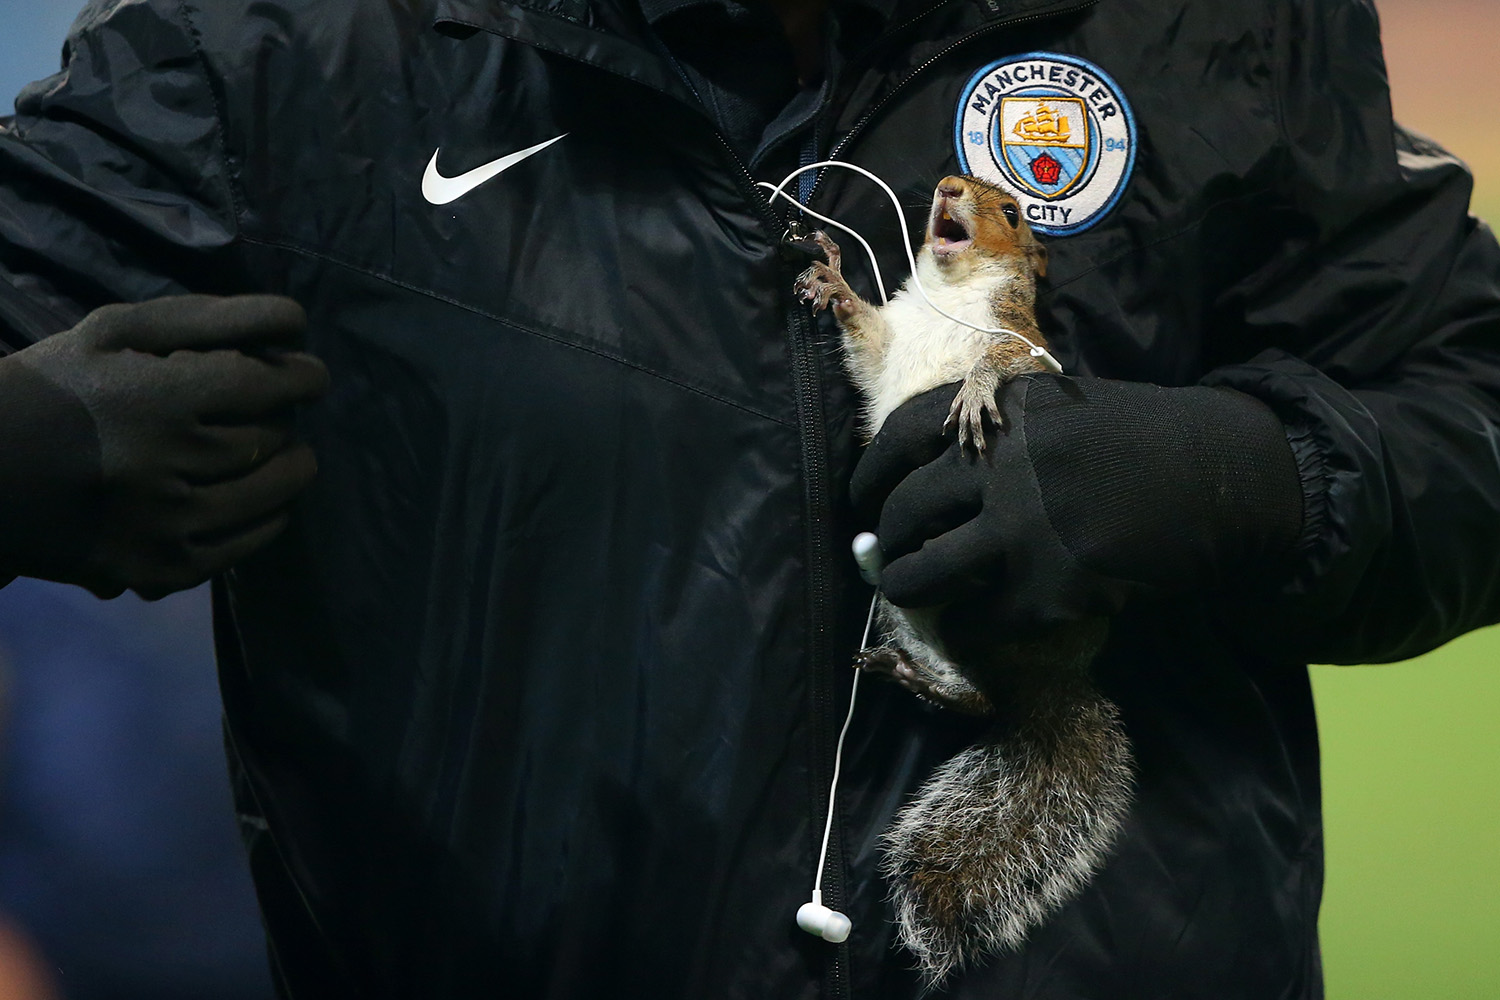 MANCHESTER, ENGLAND - OCTOBER 24:  A squirrel is removed from the pitch during the Carabao Cup Fourth Round match between Manchester City and Wolverhampton Wanderers at Etihad Stadium on October 24, 2017 in Manchester, England.  (Photo by Alex Livesey/Getty Images)